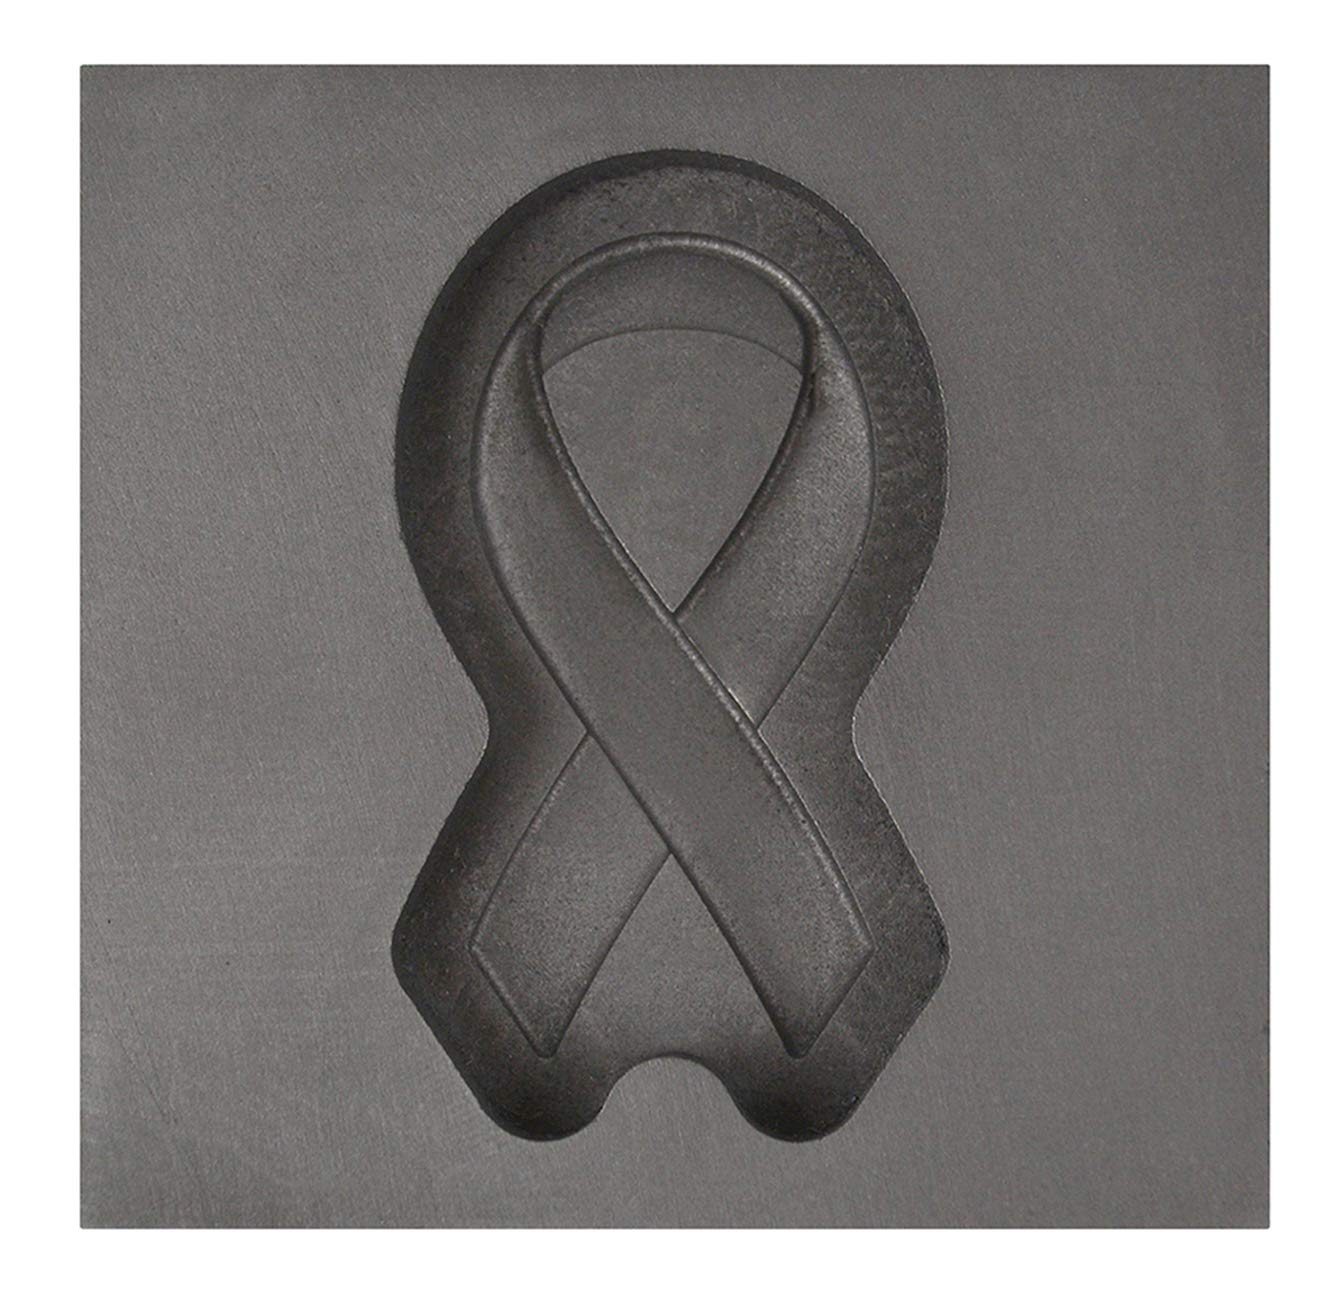 Small - Memorial Ribbon 3D Graphite Ingot Mold for Precious Metal Casting Gold Silver Melting by PMC Supplies LLC